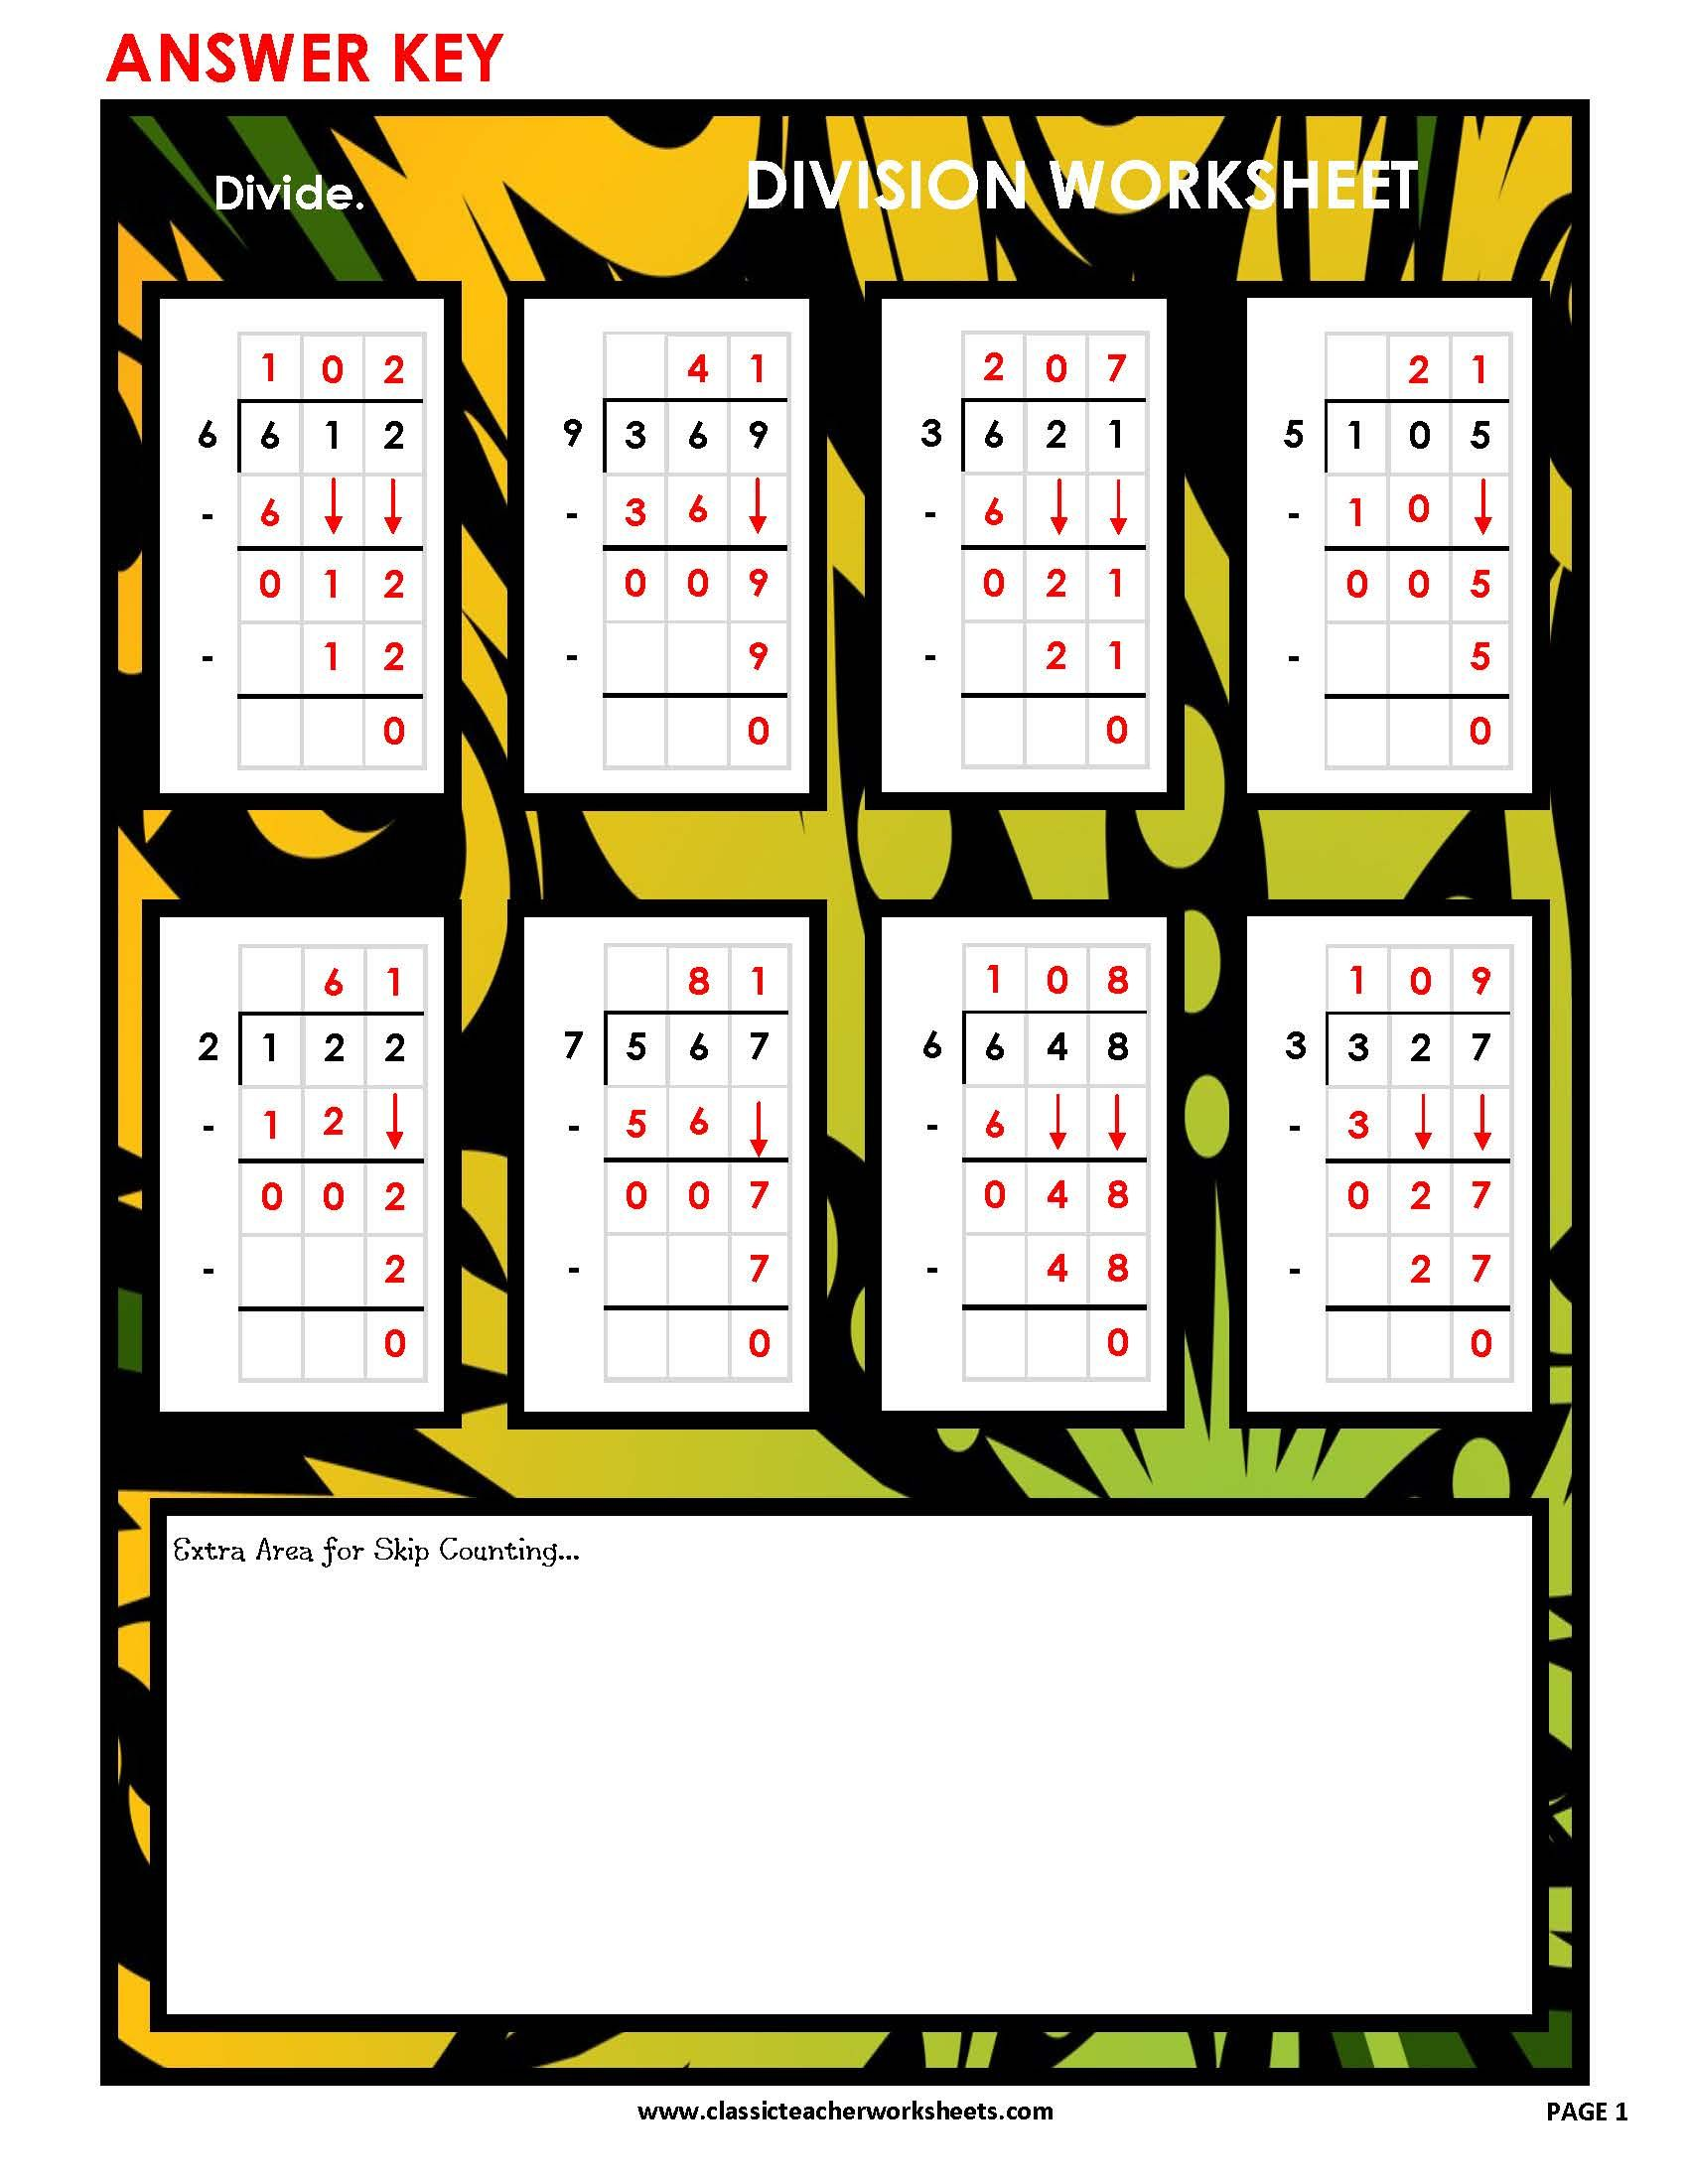 Check Out Our Collection Of Math Worksheets At